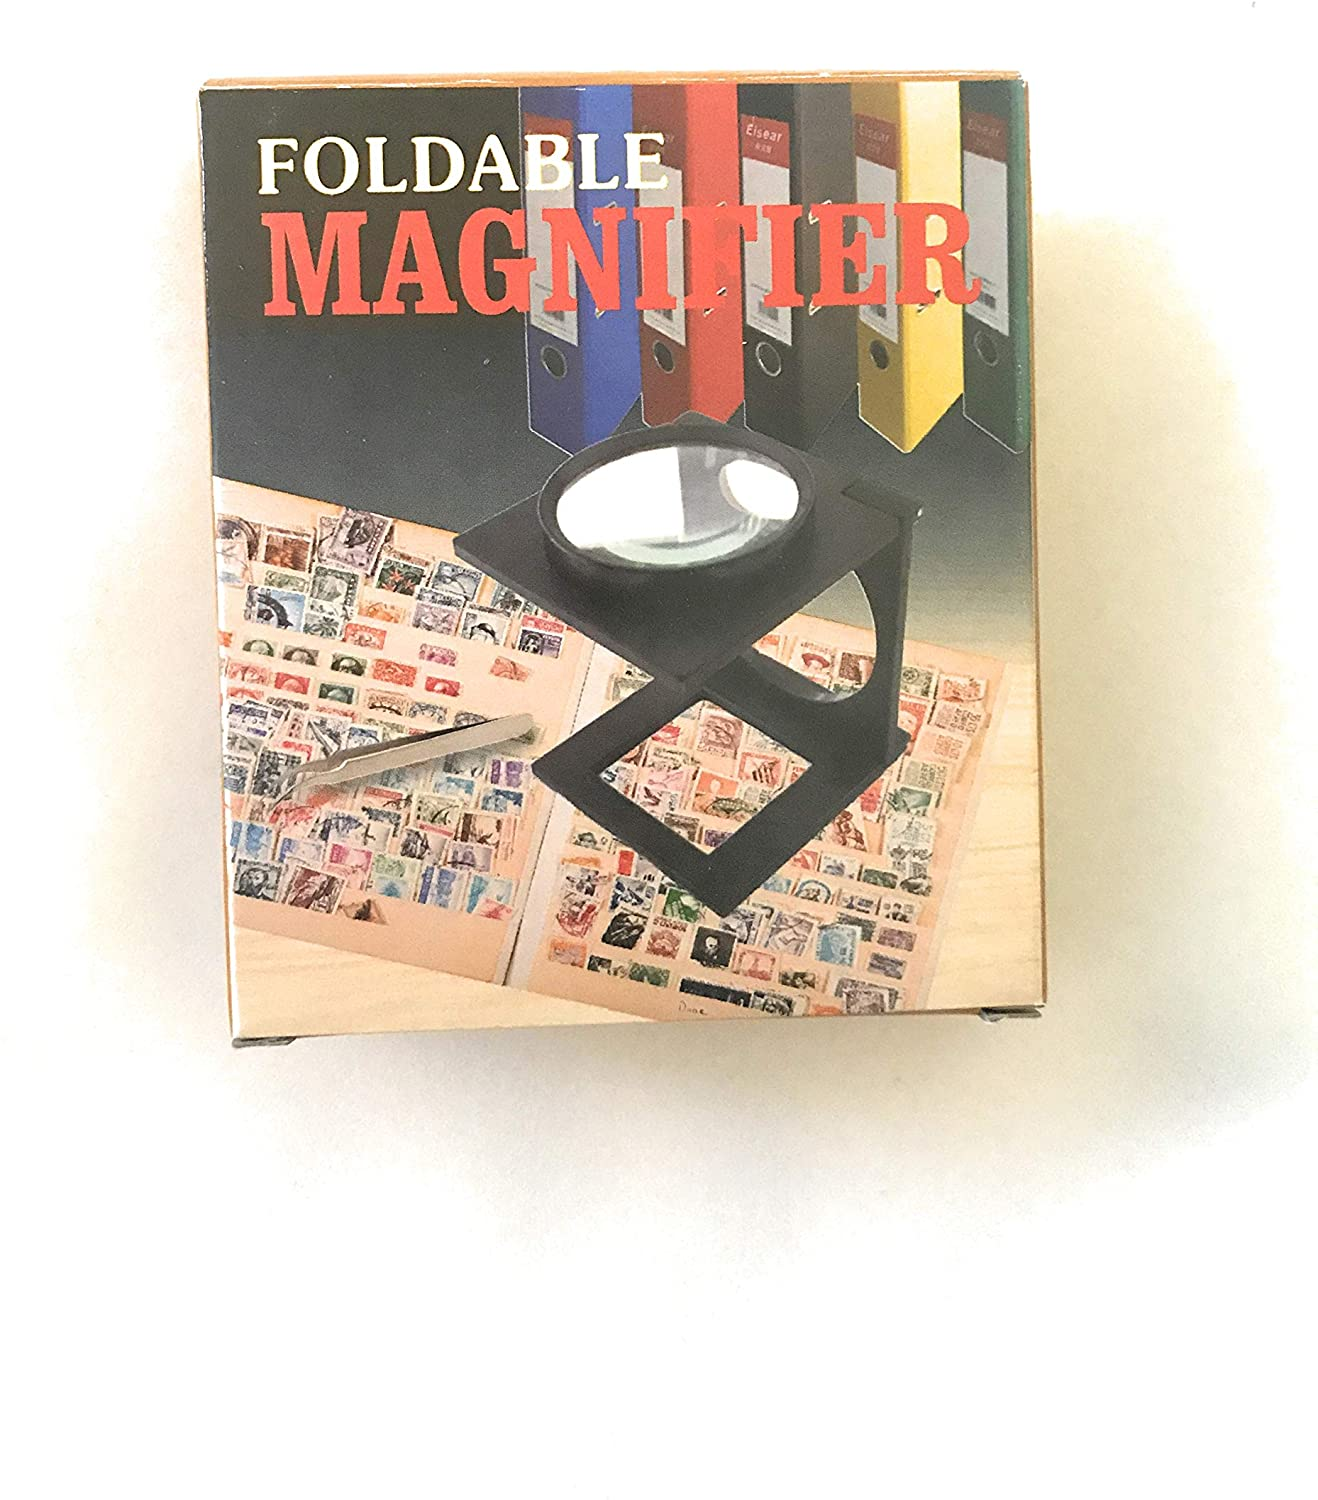 Folding Magnifier,10X Min Foldable Magnifier Loupe with Scale for Textile Optical Jewelry Sewing Thread Collection Repair